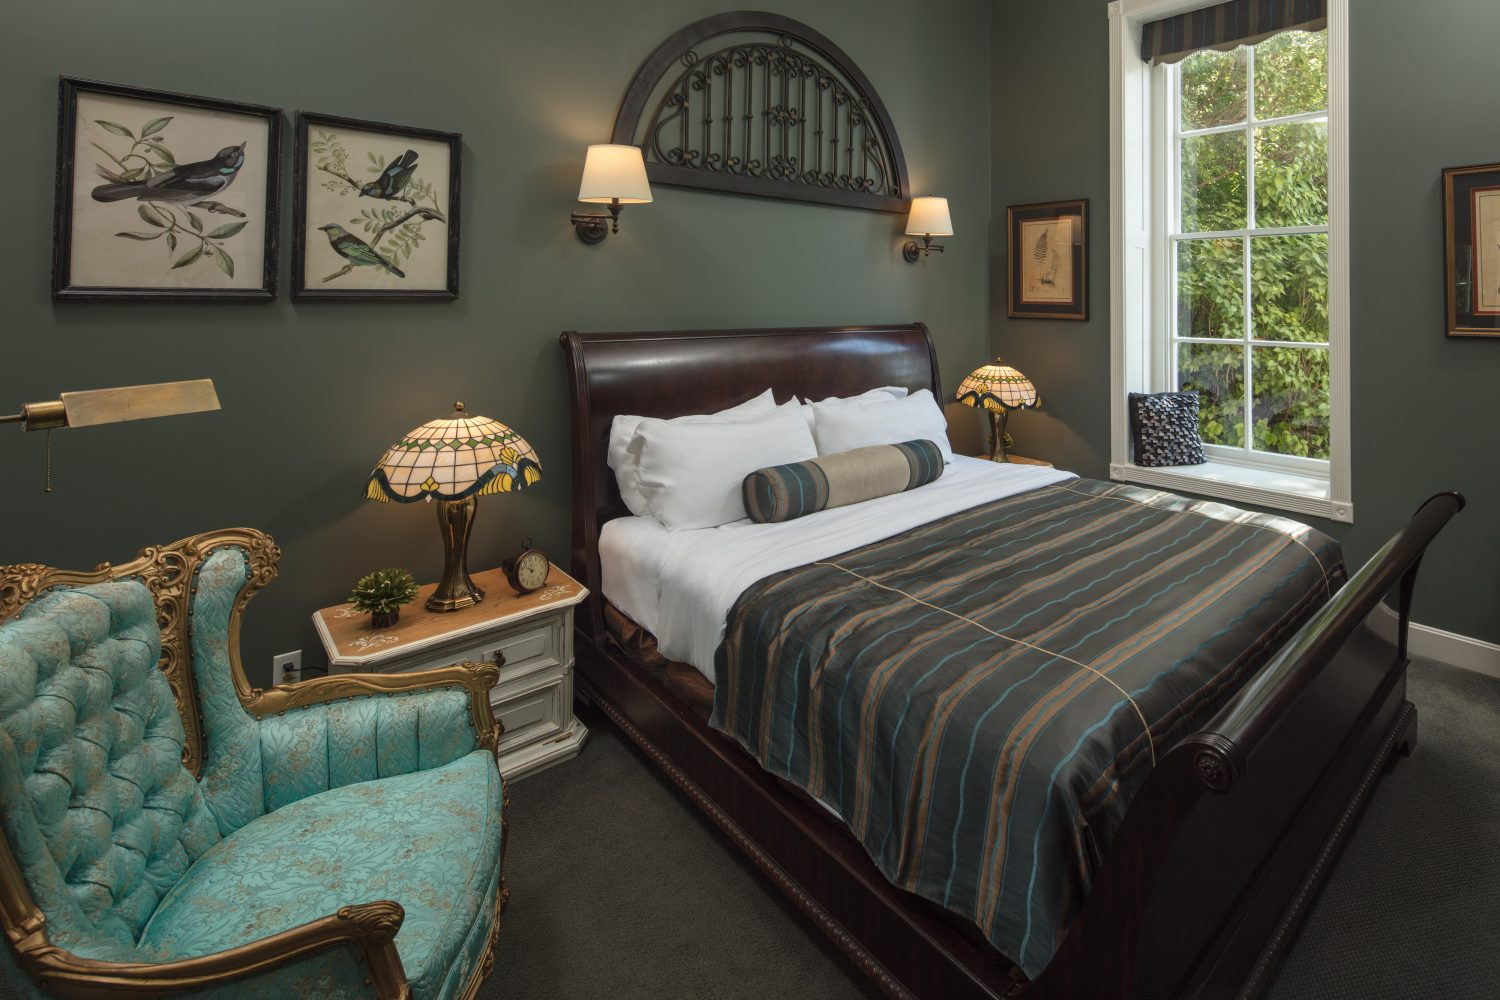 Jail Hill Inn's luxurious room 6 with deluxe furnishings and plush bedding